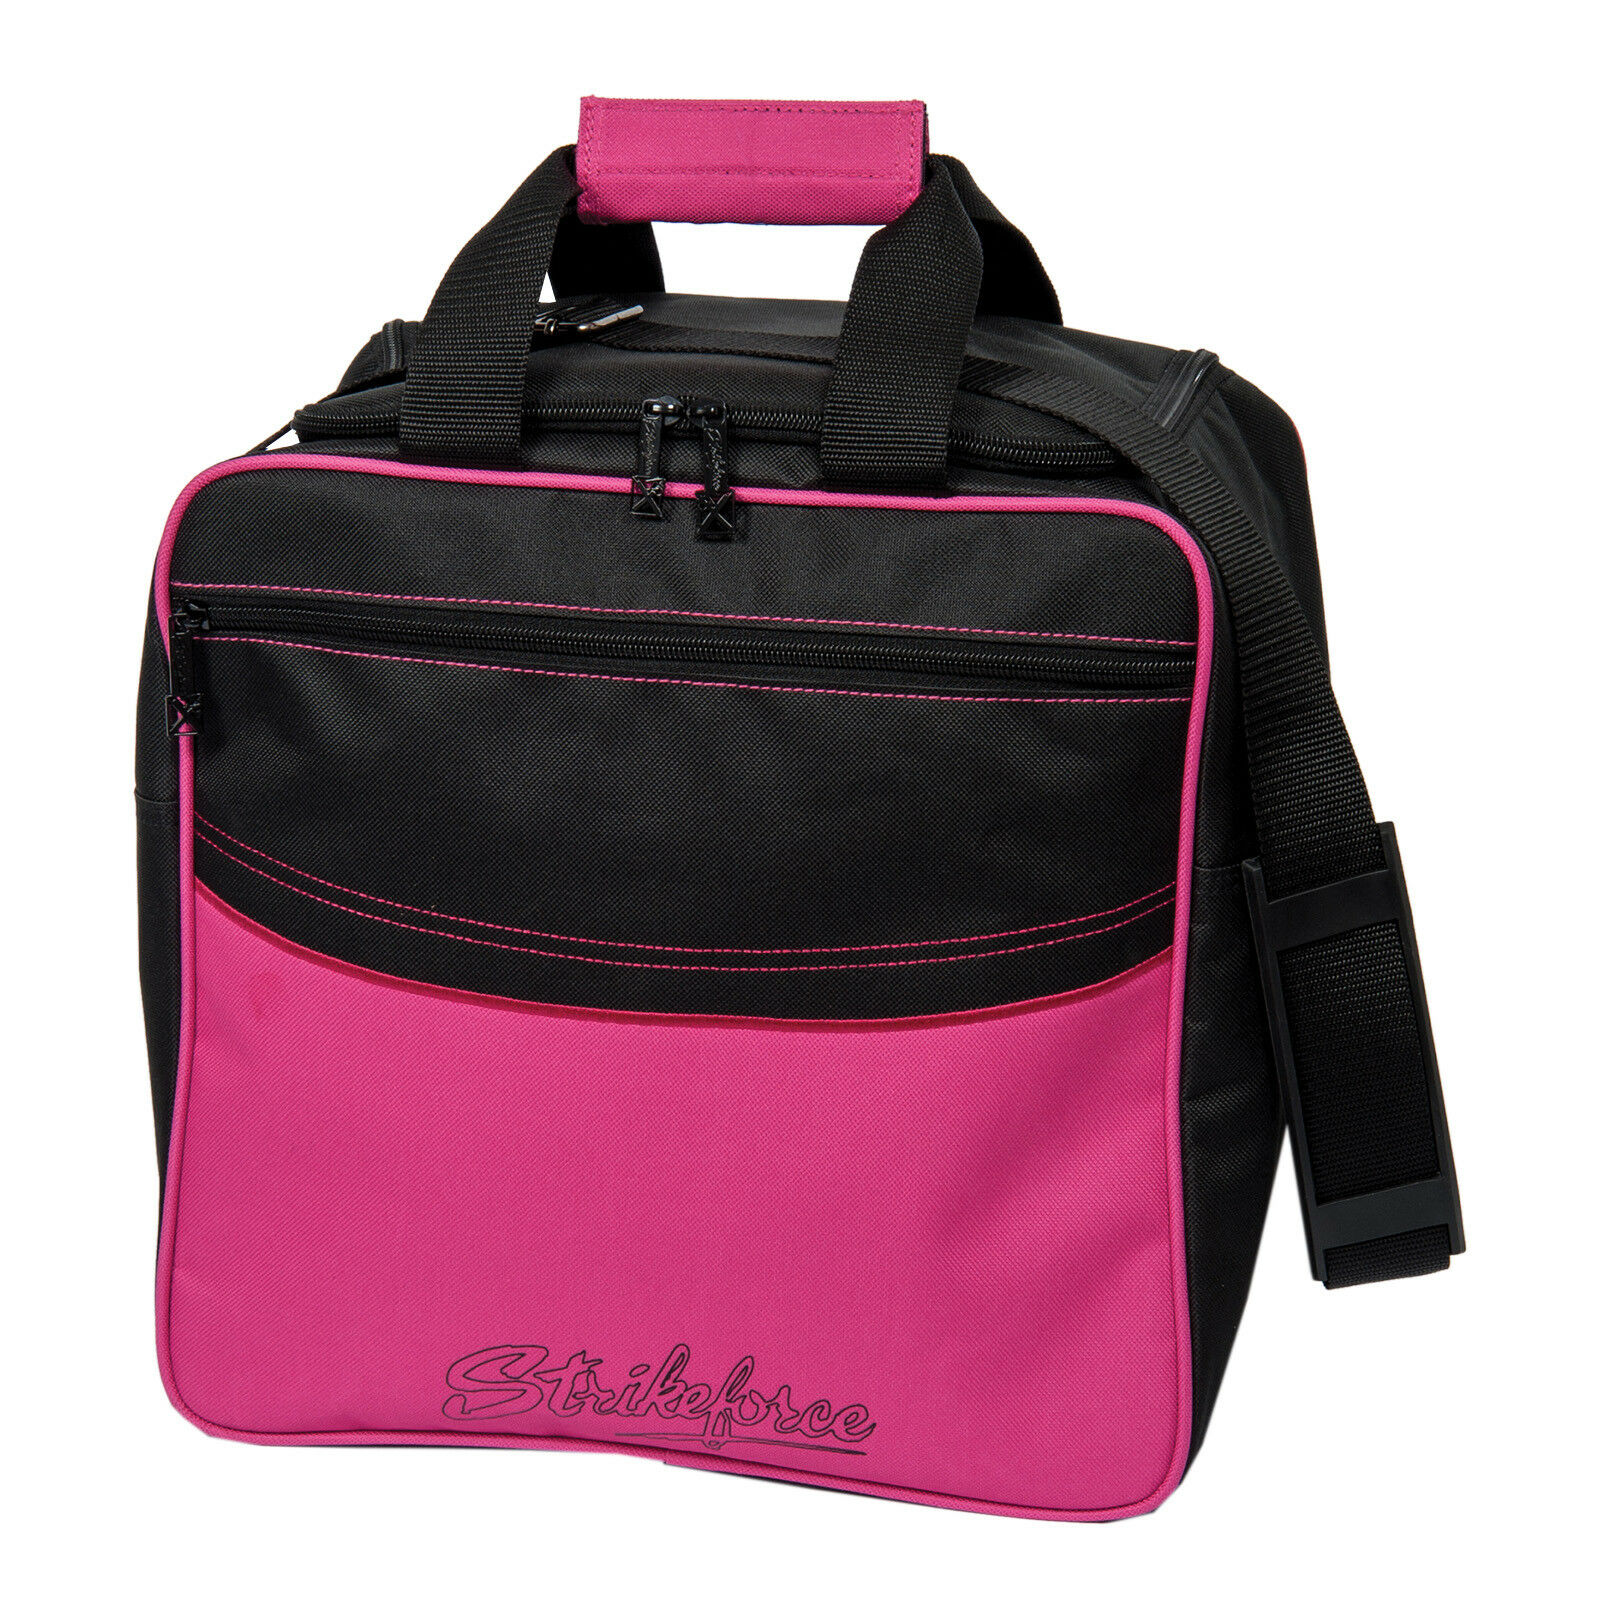 Bowling Ball Bag Kr Strikeforce colors Single Pink, Room for Bowling shoes